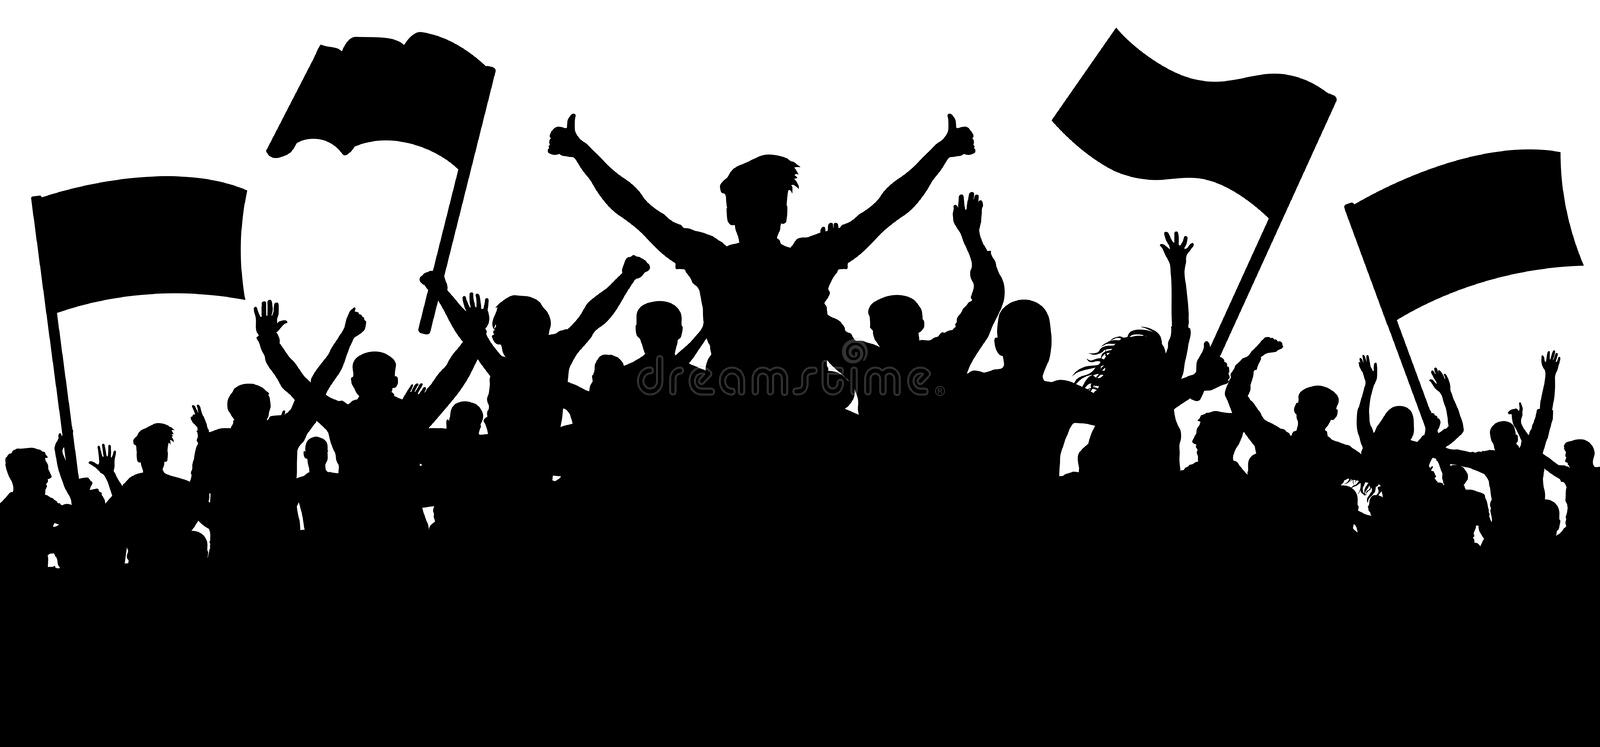 Silhouette cheer crowd people. Audience cheering applause, clapping. stock illustration